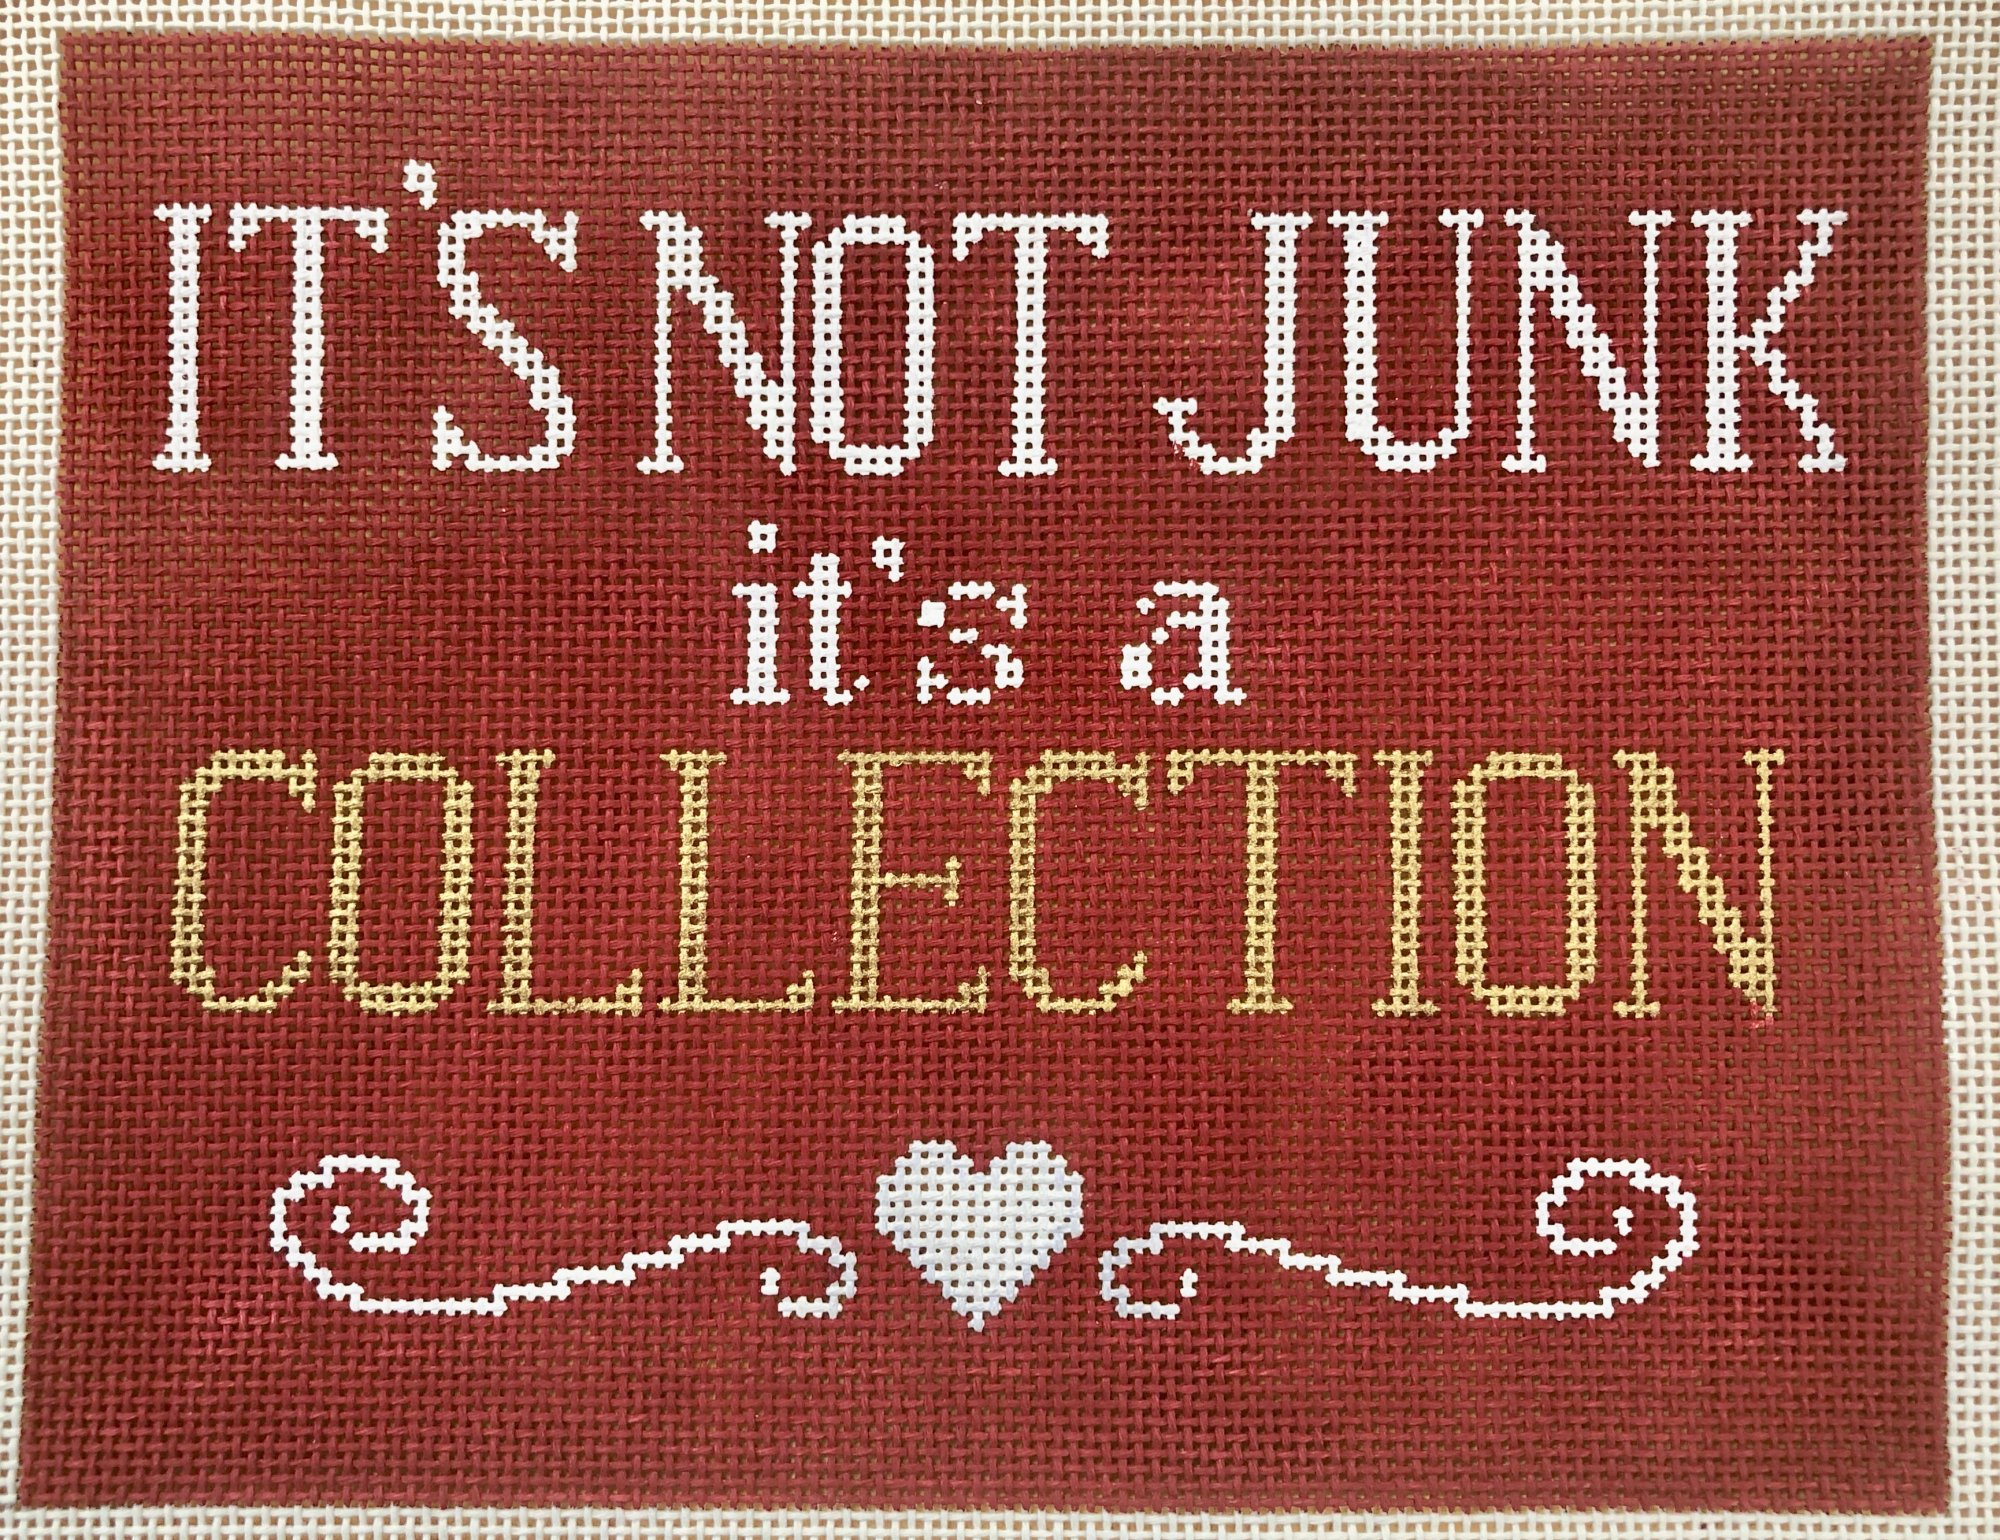 it's not junk, it's a collection